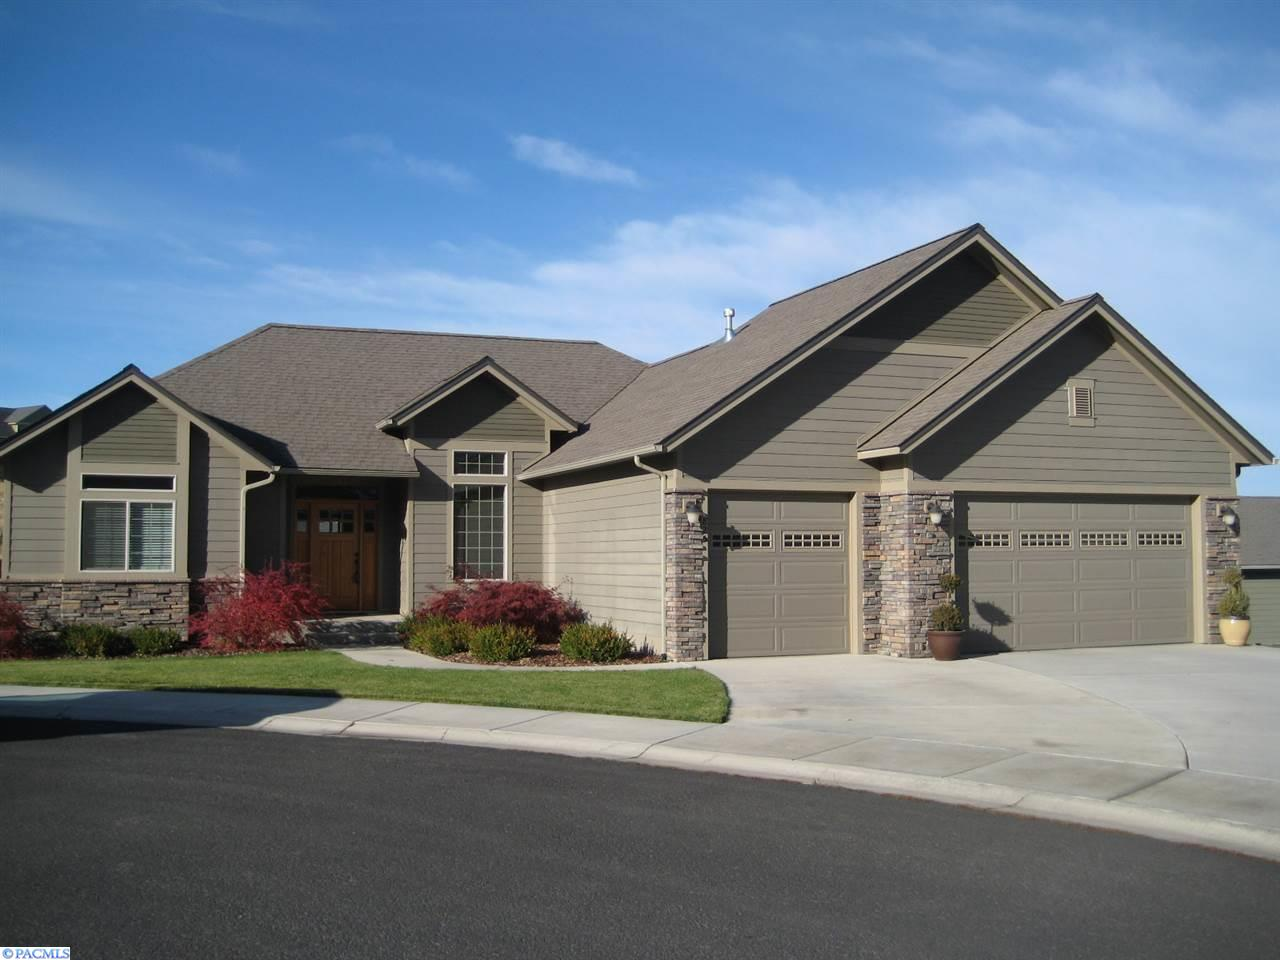 825 Sw Blue Heron Ct., Pullman, Washington 99163